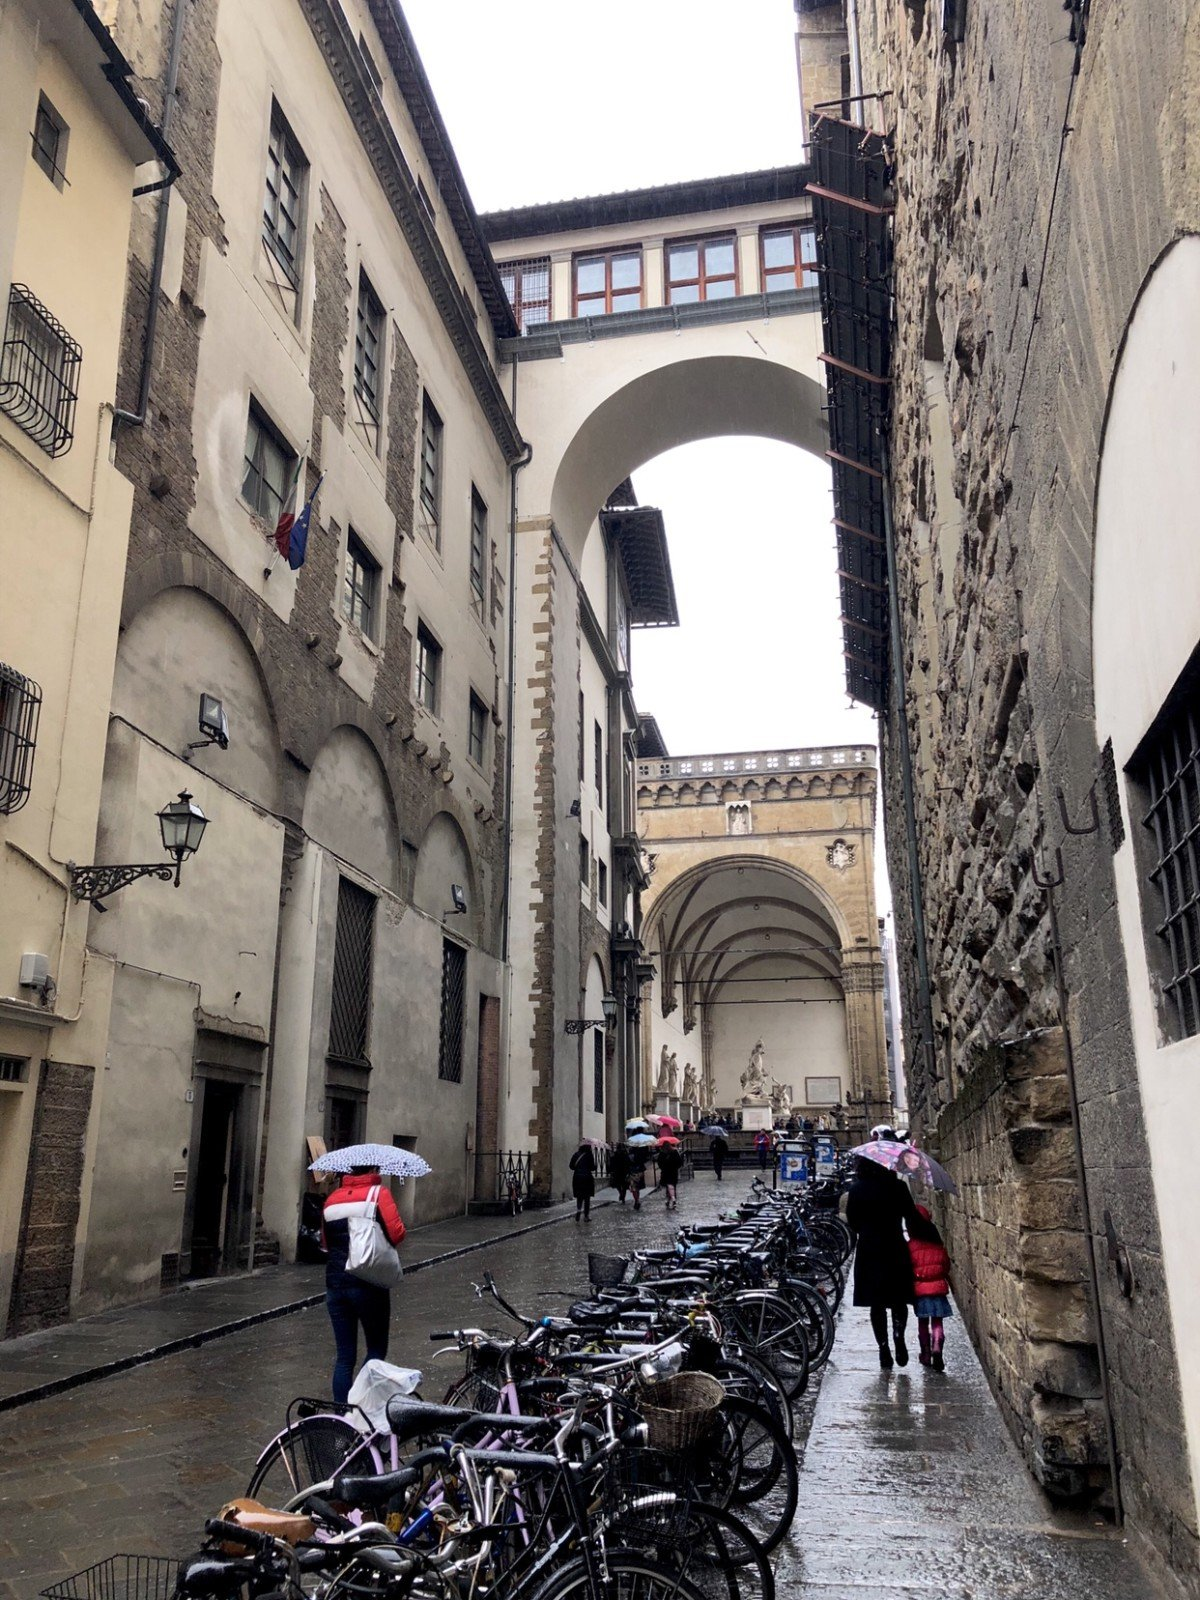 Part of the Vasari Corridor viewed from the street, Florence